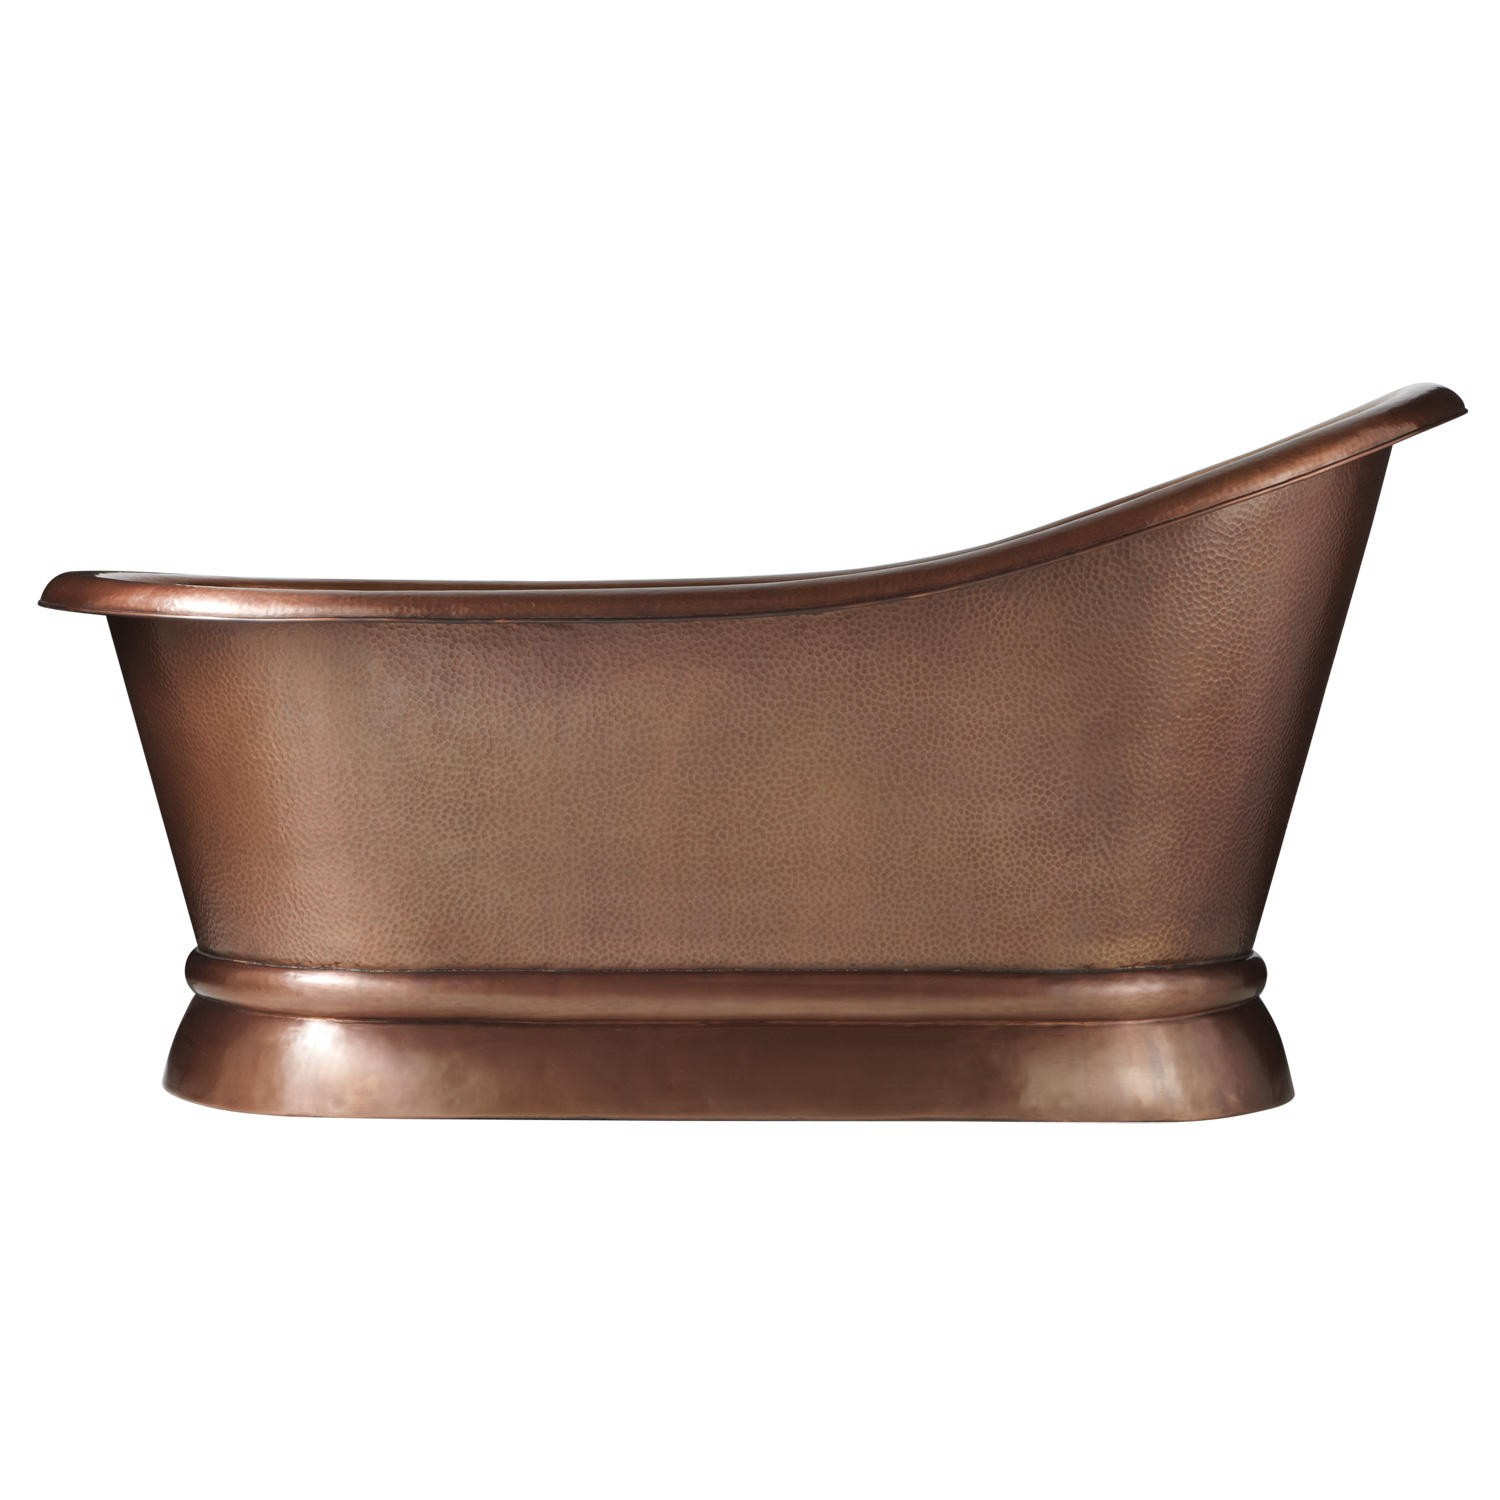 Copper Slipper Tub - Coppersmith Creations